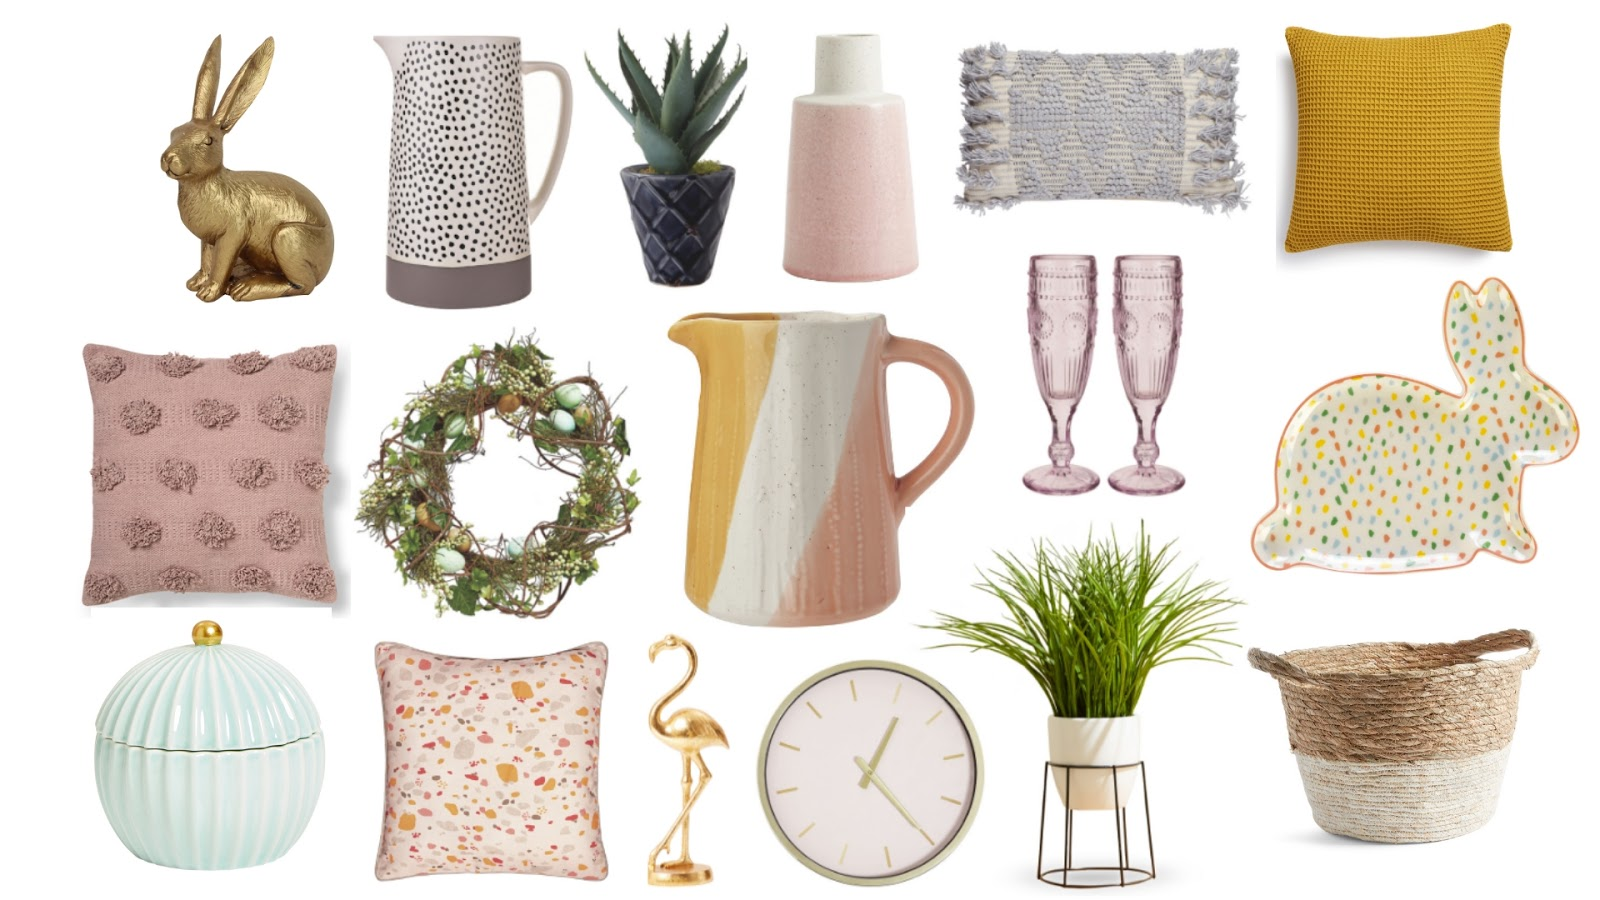 spring summer homeware 2019. update your home for easter and spring with home decor on the high street spring summer 2019 for under £20.